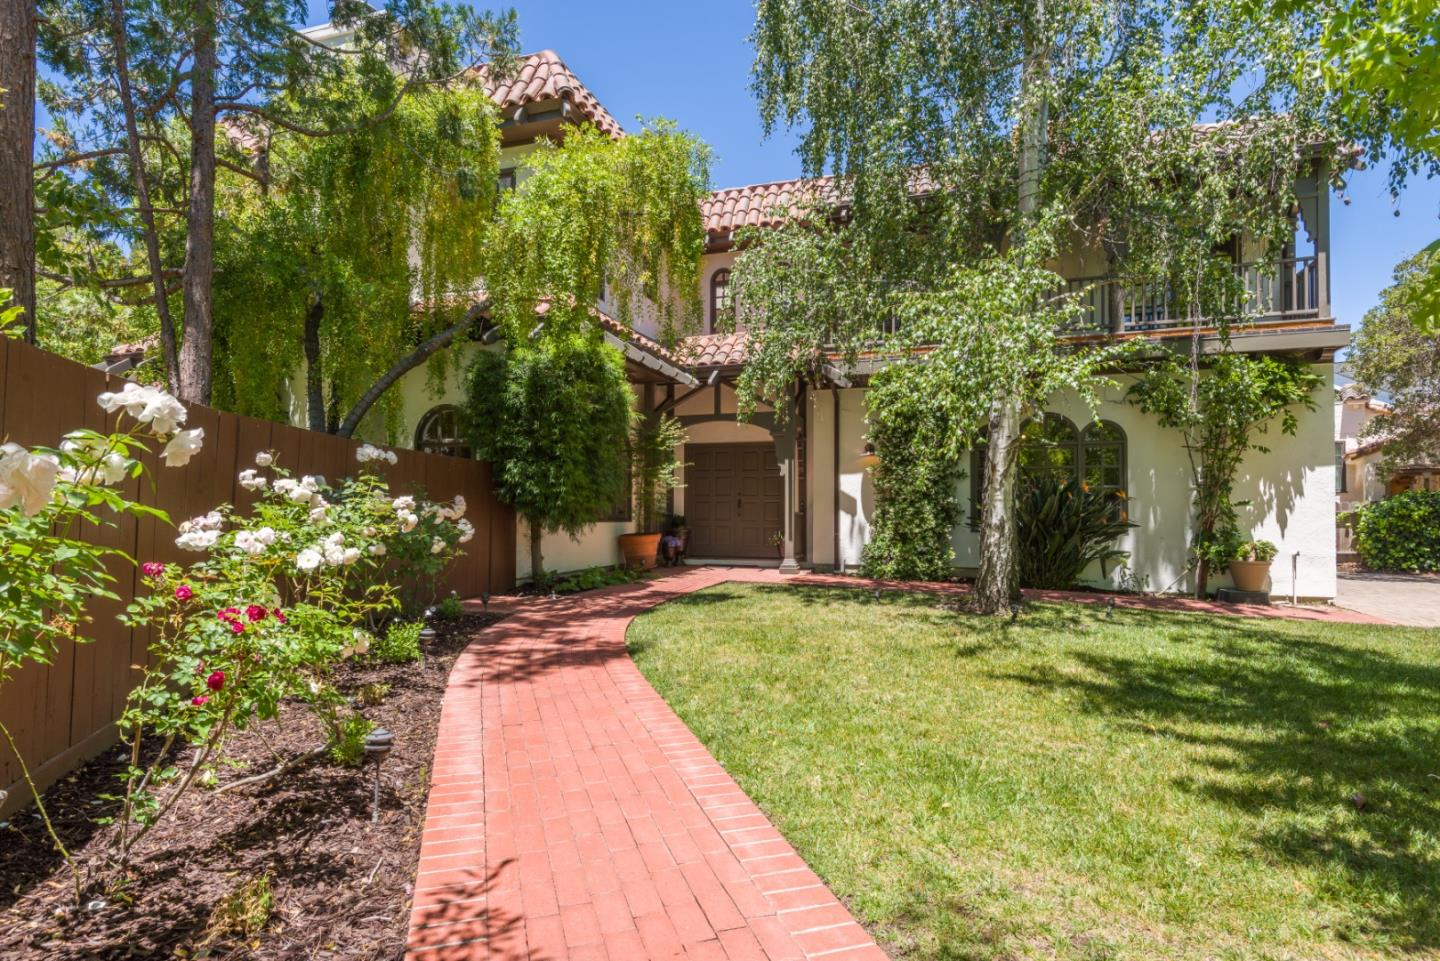 FIRST OPEN HOUSE Saturday and Sunday 1-4.  Stately and stunning Mediterranean home located near downtown Burlingame Ave, parks, transportation.  Gated large lot with lovely gardens, patios, fountain, and al fresco dining areas.  Grand 2 story entrance with skylights for natural light.  3800 sq feet of well thought out living spaces, updated by current owner with high quality stainless steel appliances, a master bath sauna, 2 fireplaces in master suite and living room. Along with 3 upstairs large bedrooms all with their own baths, there is a 4th bedroom suite located on the main floor with its own entrance and a lovely view to the courtyard and fountain. In addition, there are double pantry closets in the kitchen, a 3 car garage with lots of parking, a charming traditional balcony off the master suite overlooking the birch trees in the front garden.